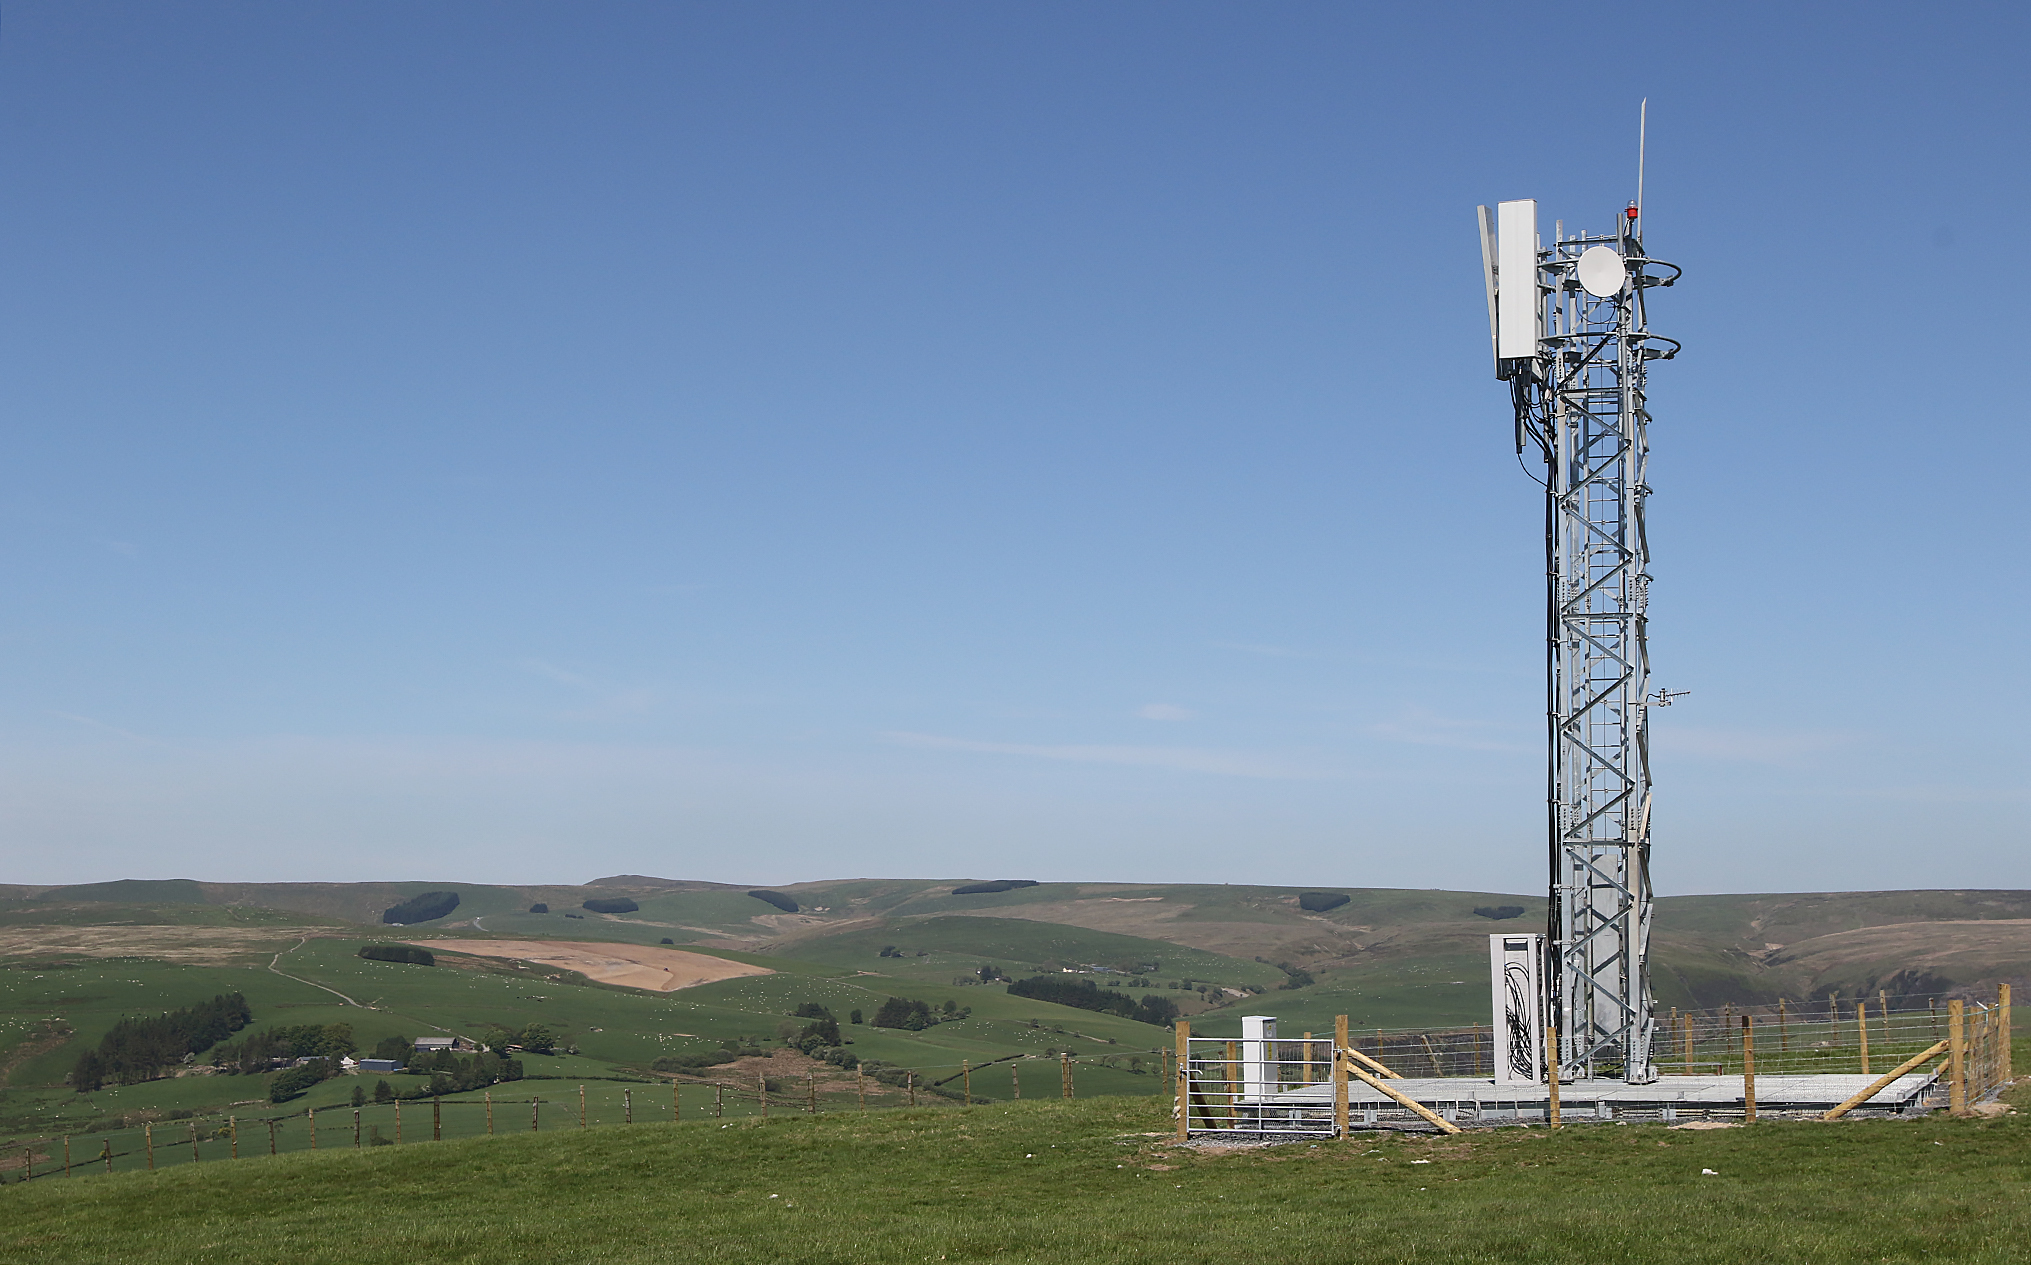 Photo of a telephone mast in rural Scotland